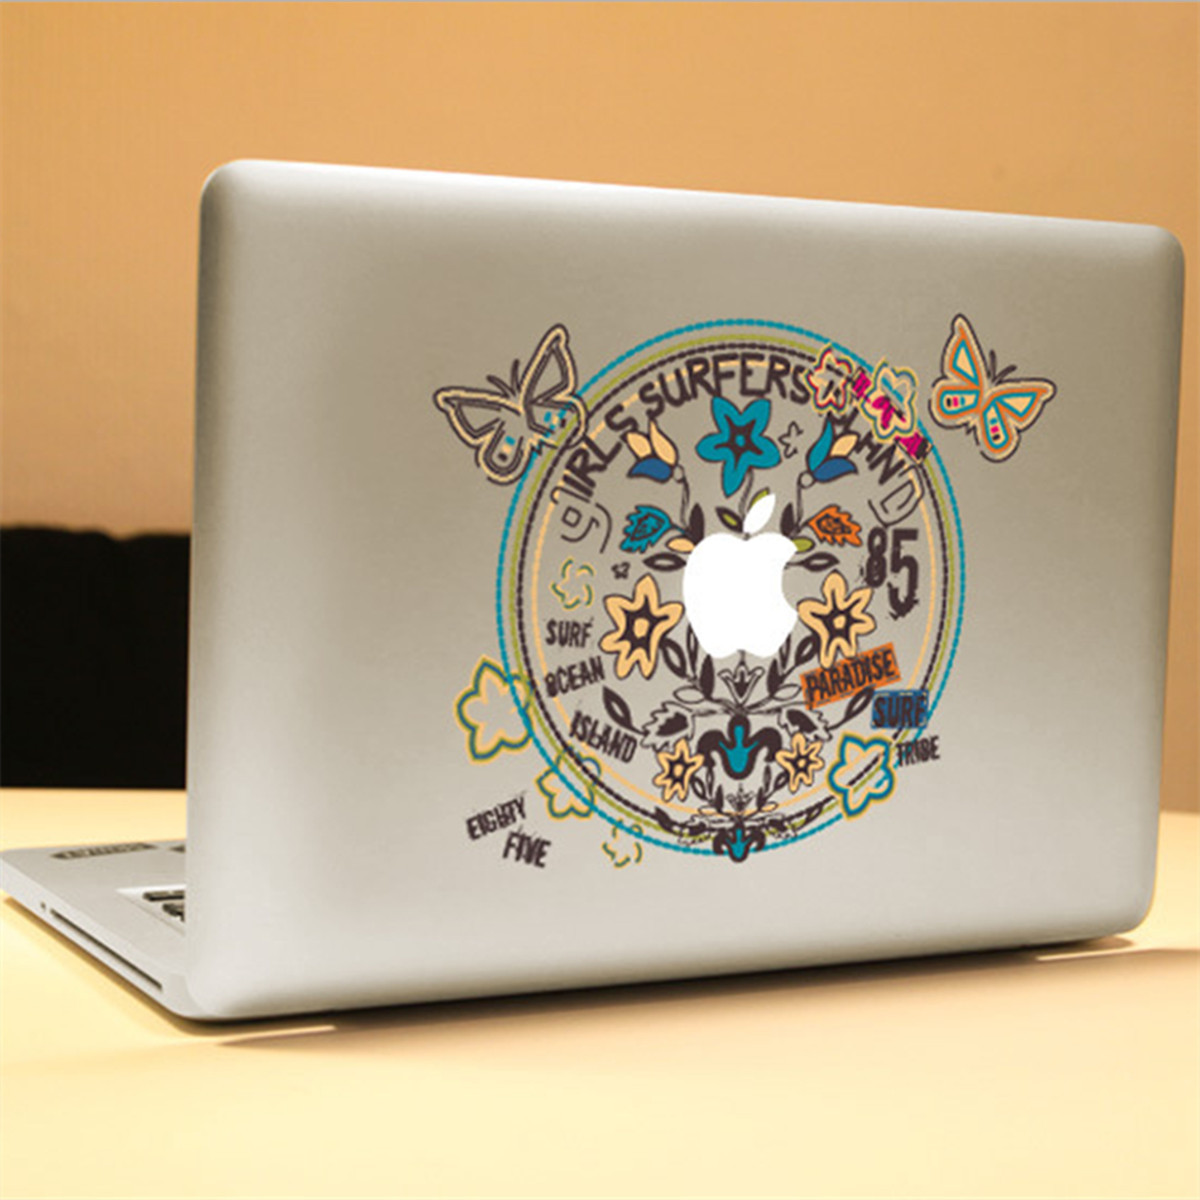 Butterfly Wreath Decal Vinyl Sticker Skin Shell Decoration Laptop Sticker Decal For Apple MacBook